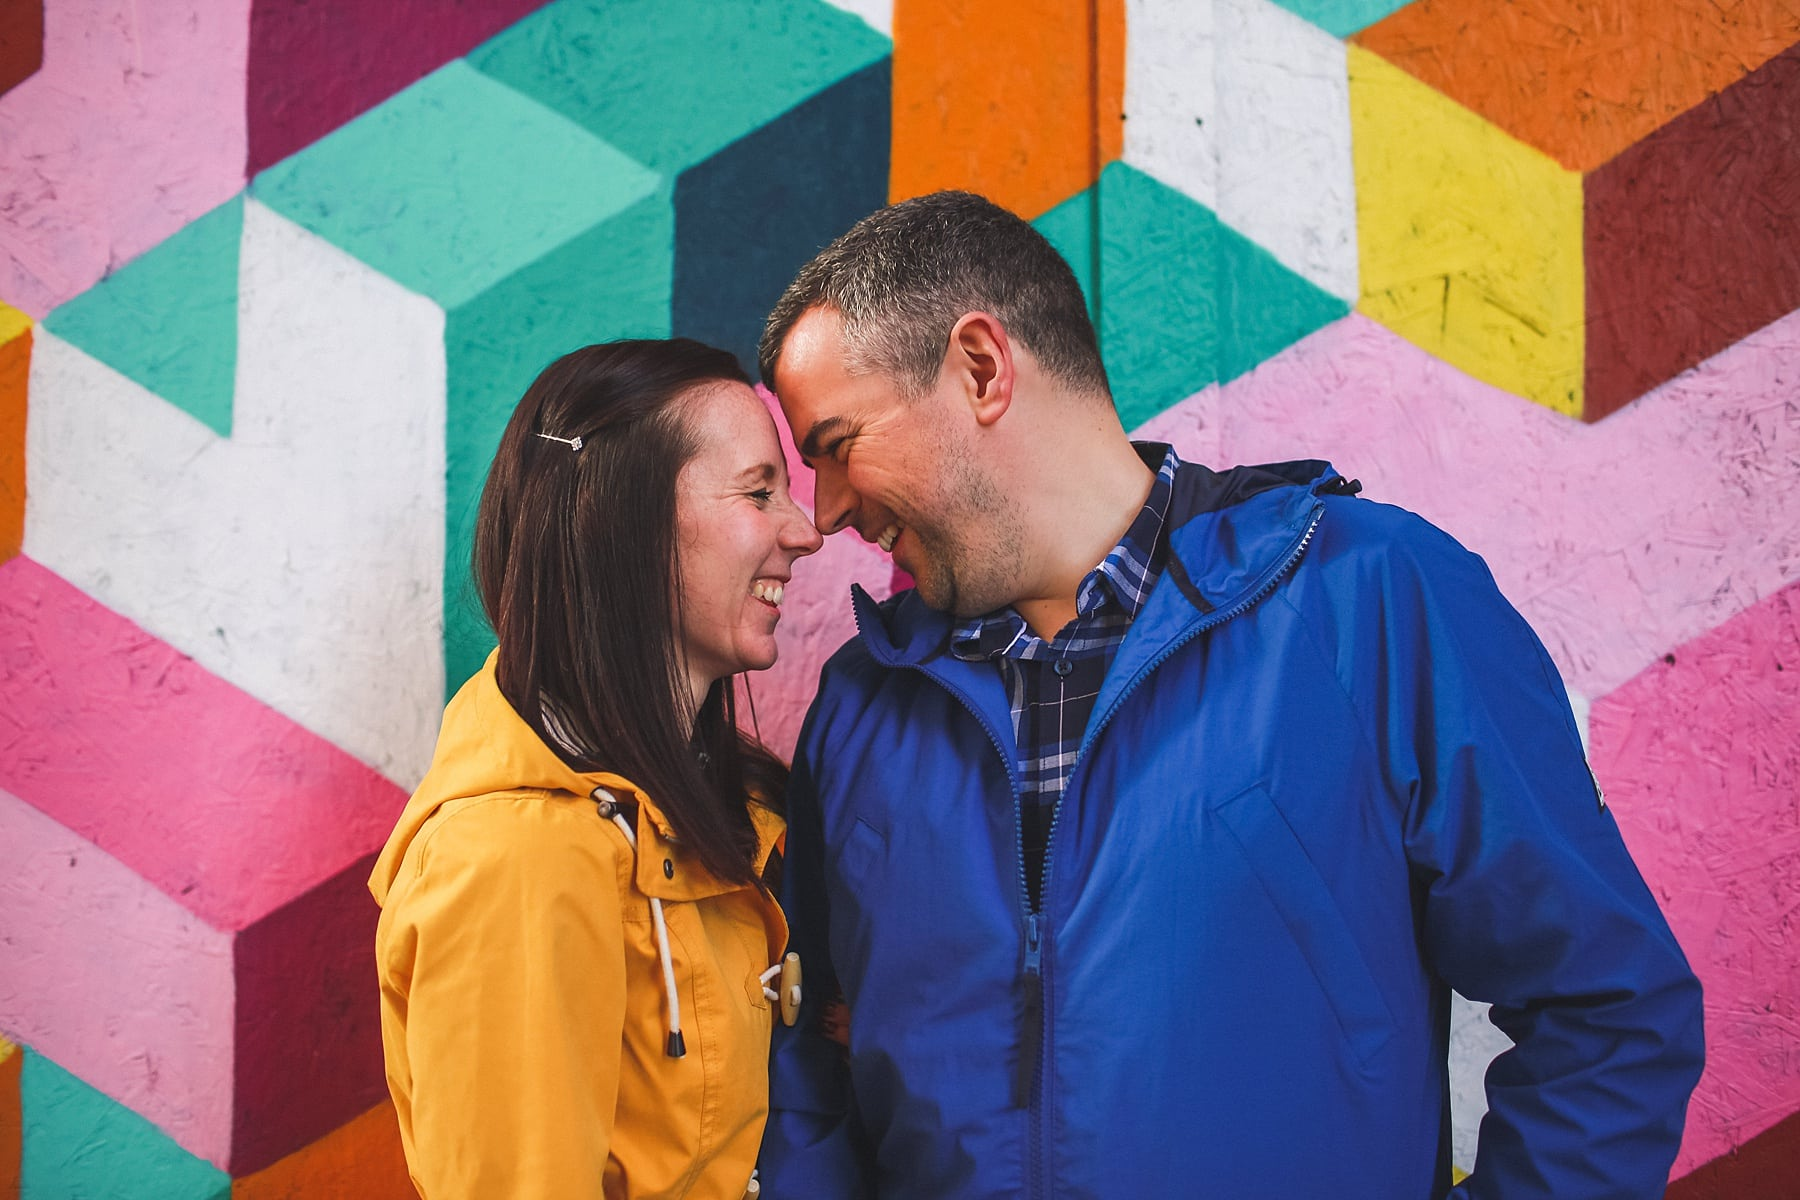 surprise proposal,ireland wedding photographer,whitepark bay,bothy,portrush harbour photography,royal court hotel,borris house,belfast city wedding photographer,